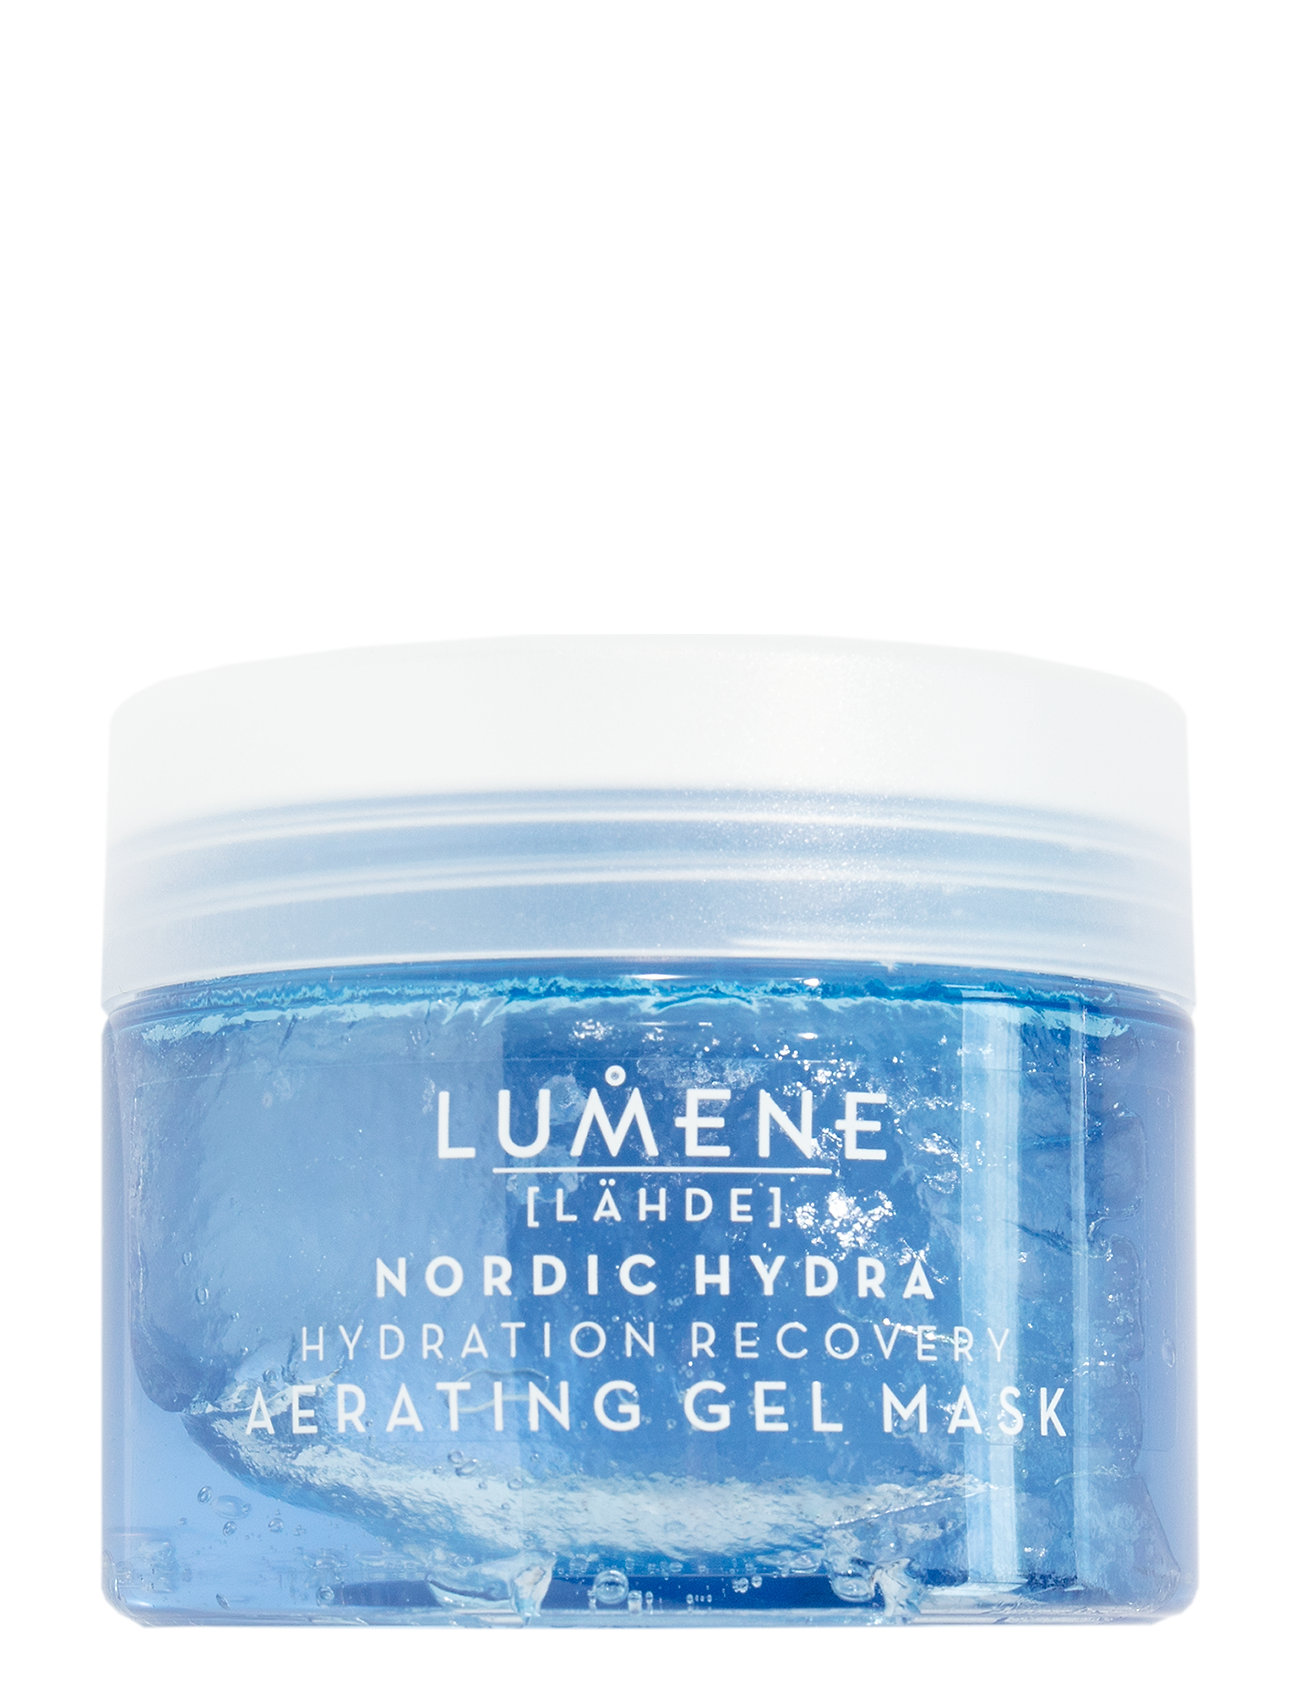 Image of LäHde Nordic Hydra Hydration Recovery Aerating Gel Mask Beauty WOMEN Skin Care Face Face Masks Nude LUMENE (3305405611)